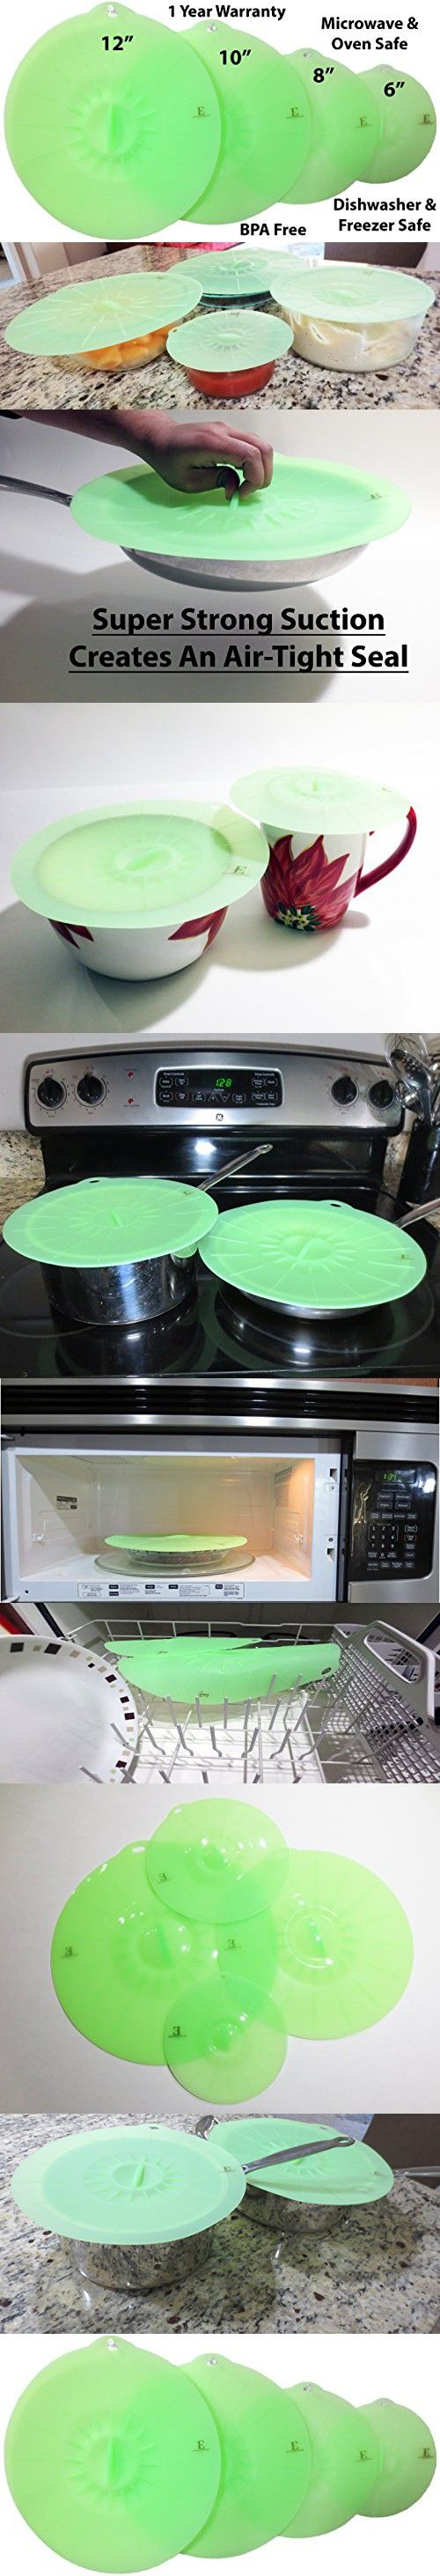 Silicone Suction Lids, Set of 4, Green, Super Durable, FDA Approved, 1 Year Warranty - Cover Pots, Pans, Bowls, Cups - Keep Food Fresh - Freezer, Microwave, And Dishwasher Safe - BPA Free - Multi Size